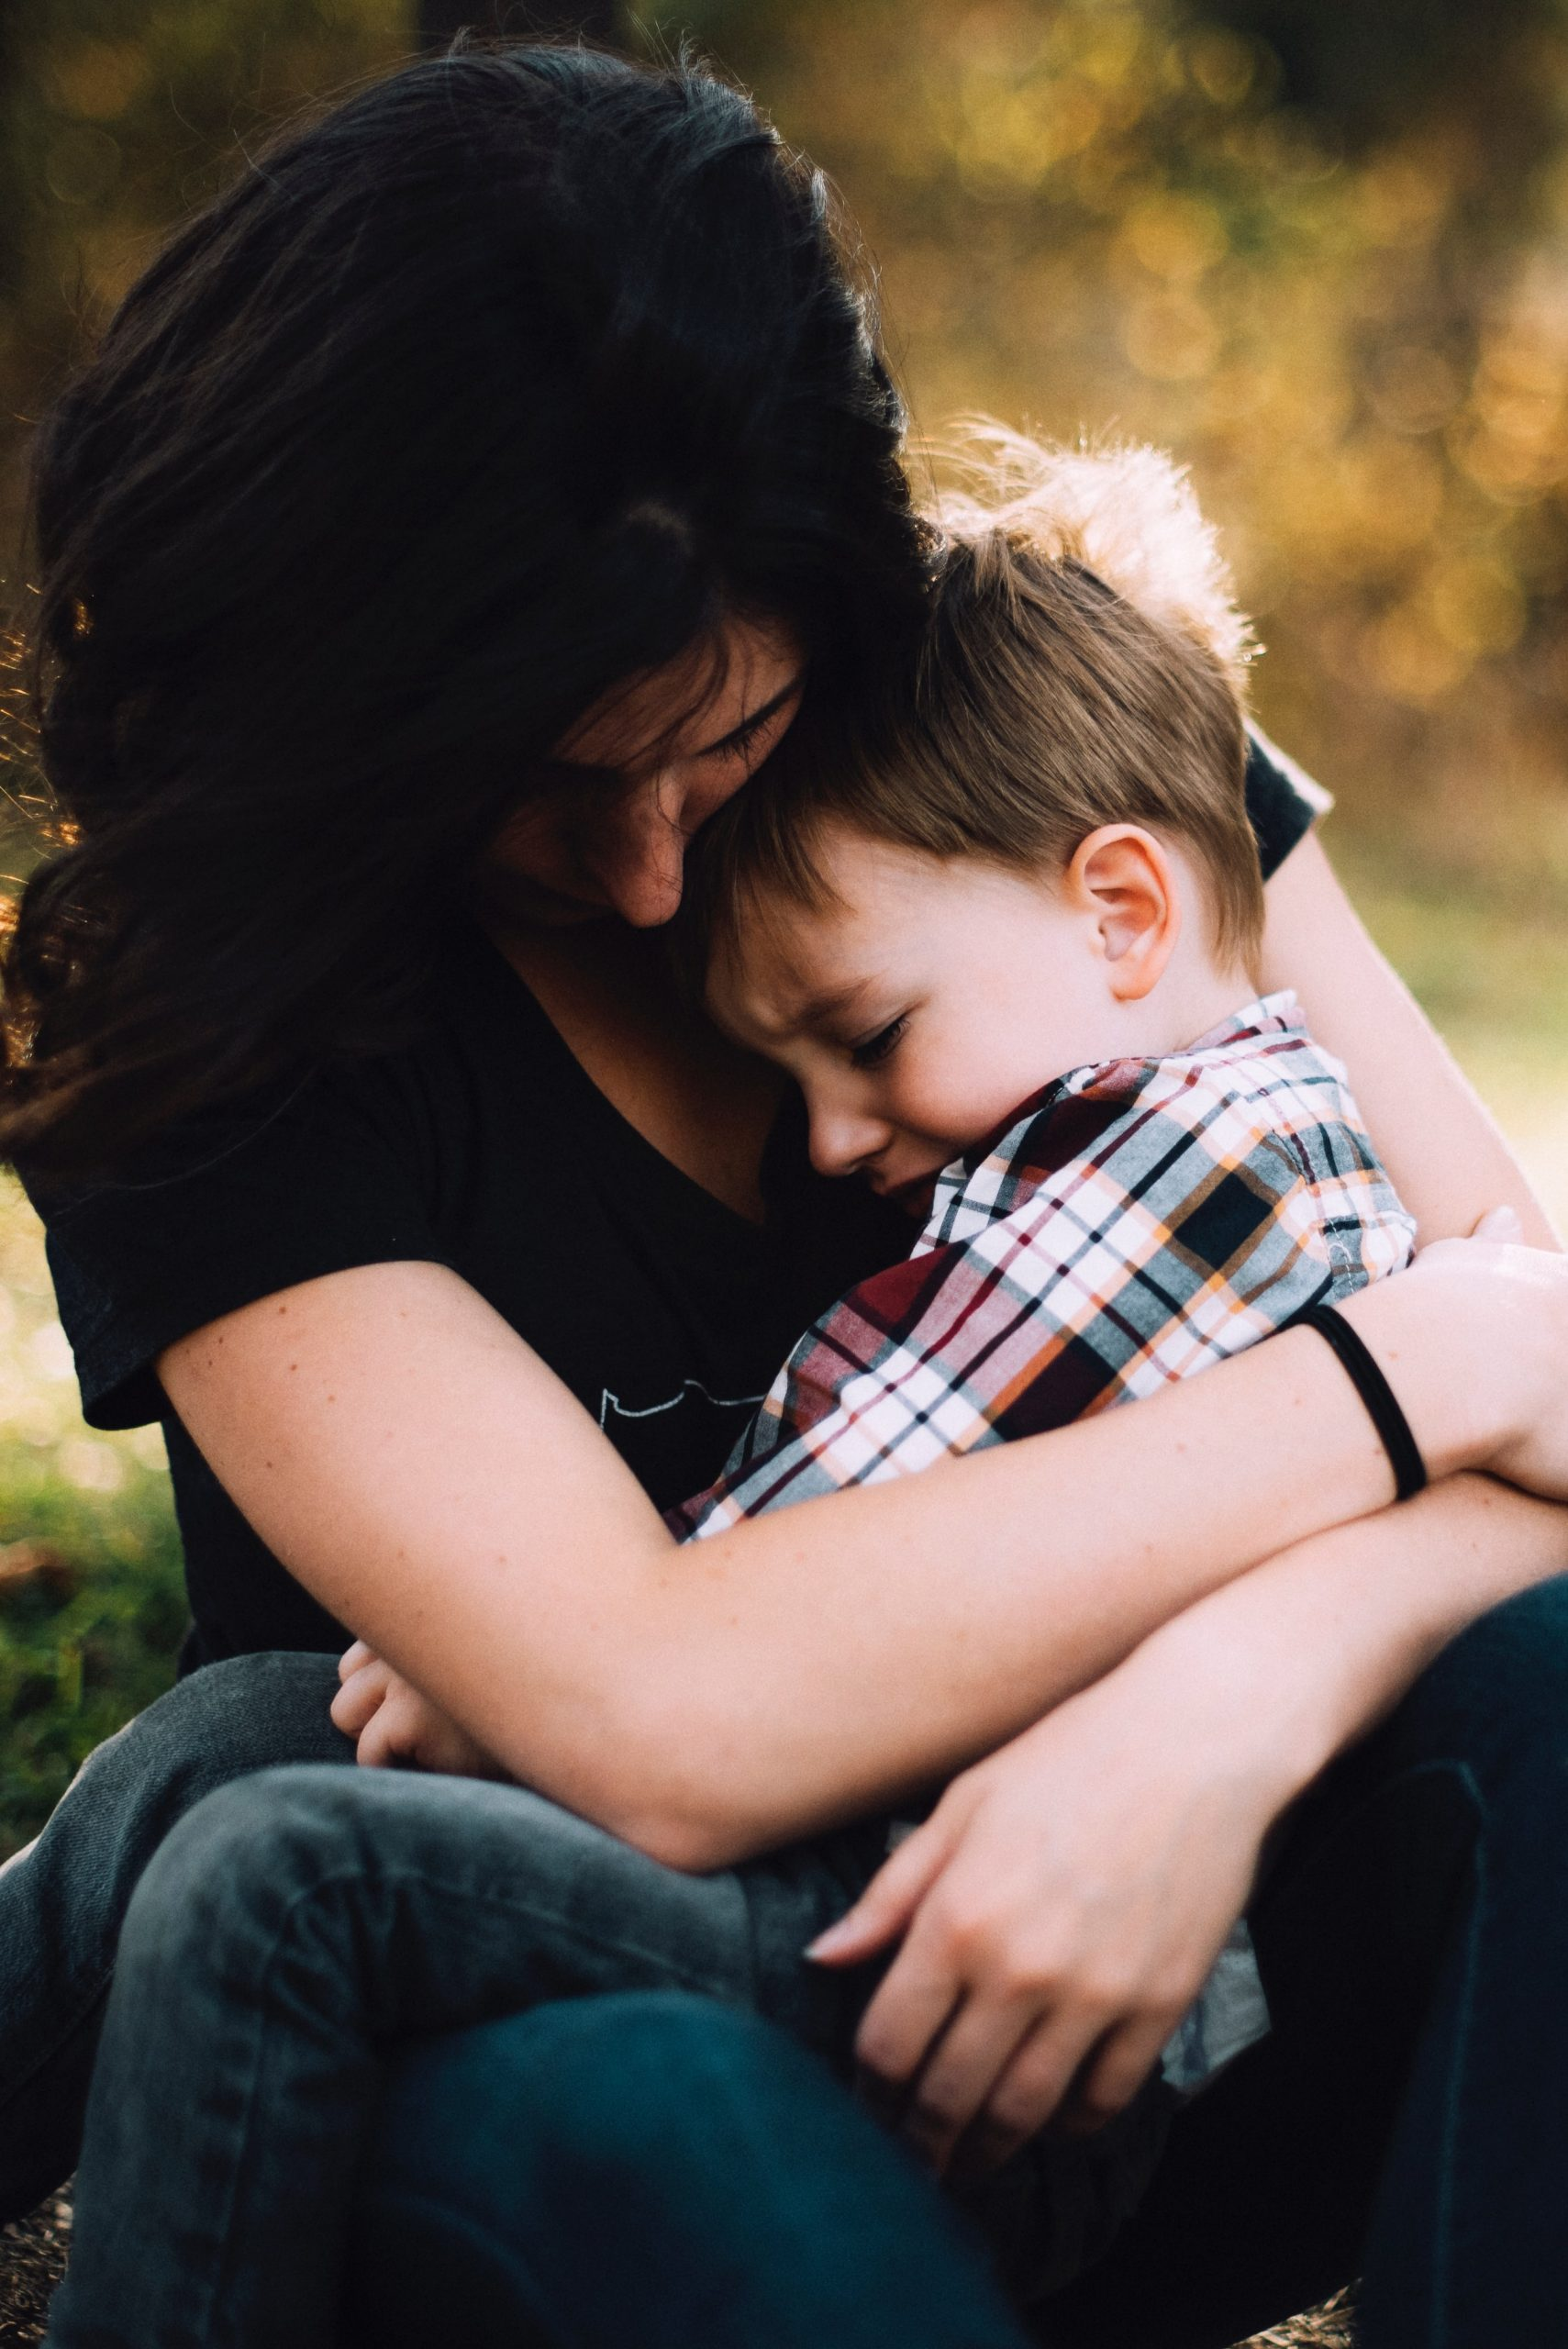 ANGER: What's going on inside your child's mind?  How do you interpret and react to your child's anger?  Let's understand them before we react to them.